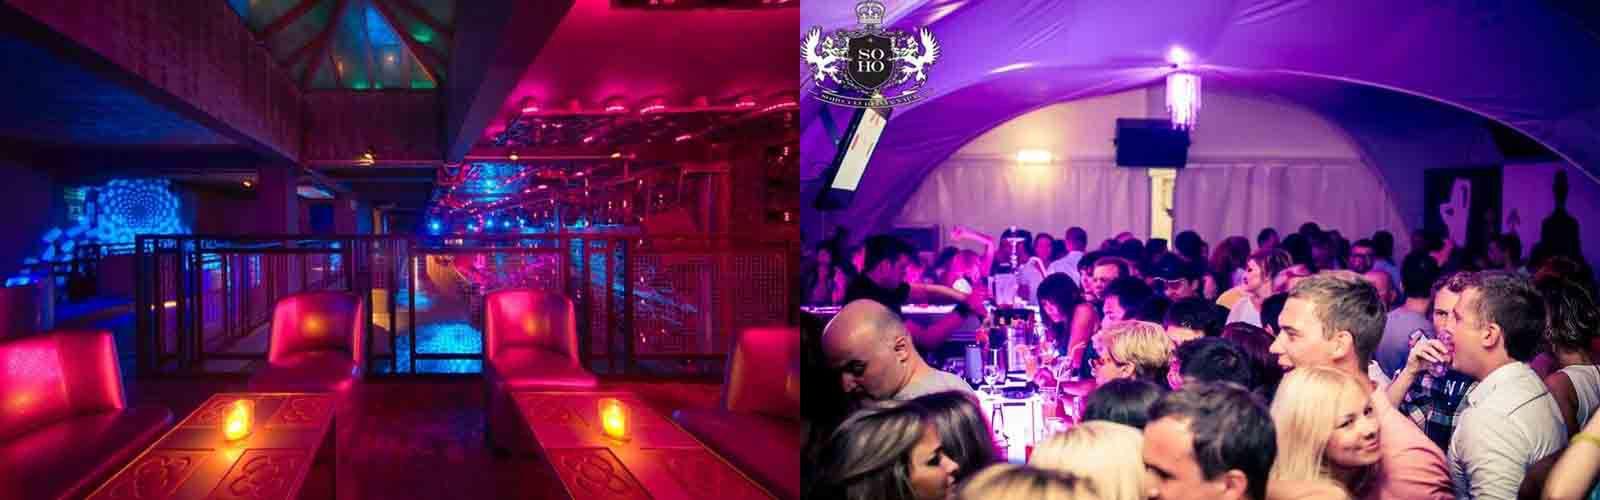 Dance at the best hits at Nightclub Aire Barcelona